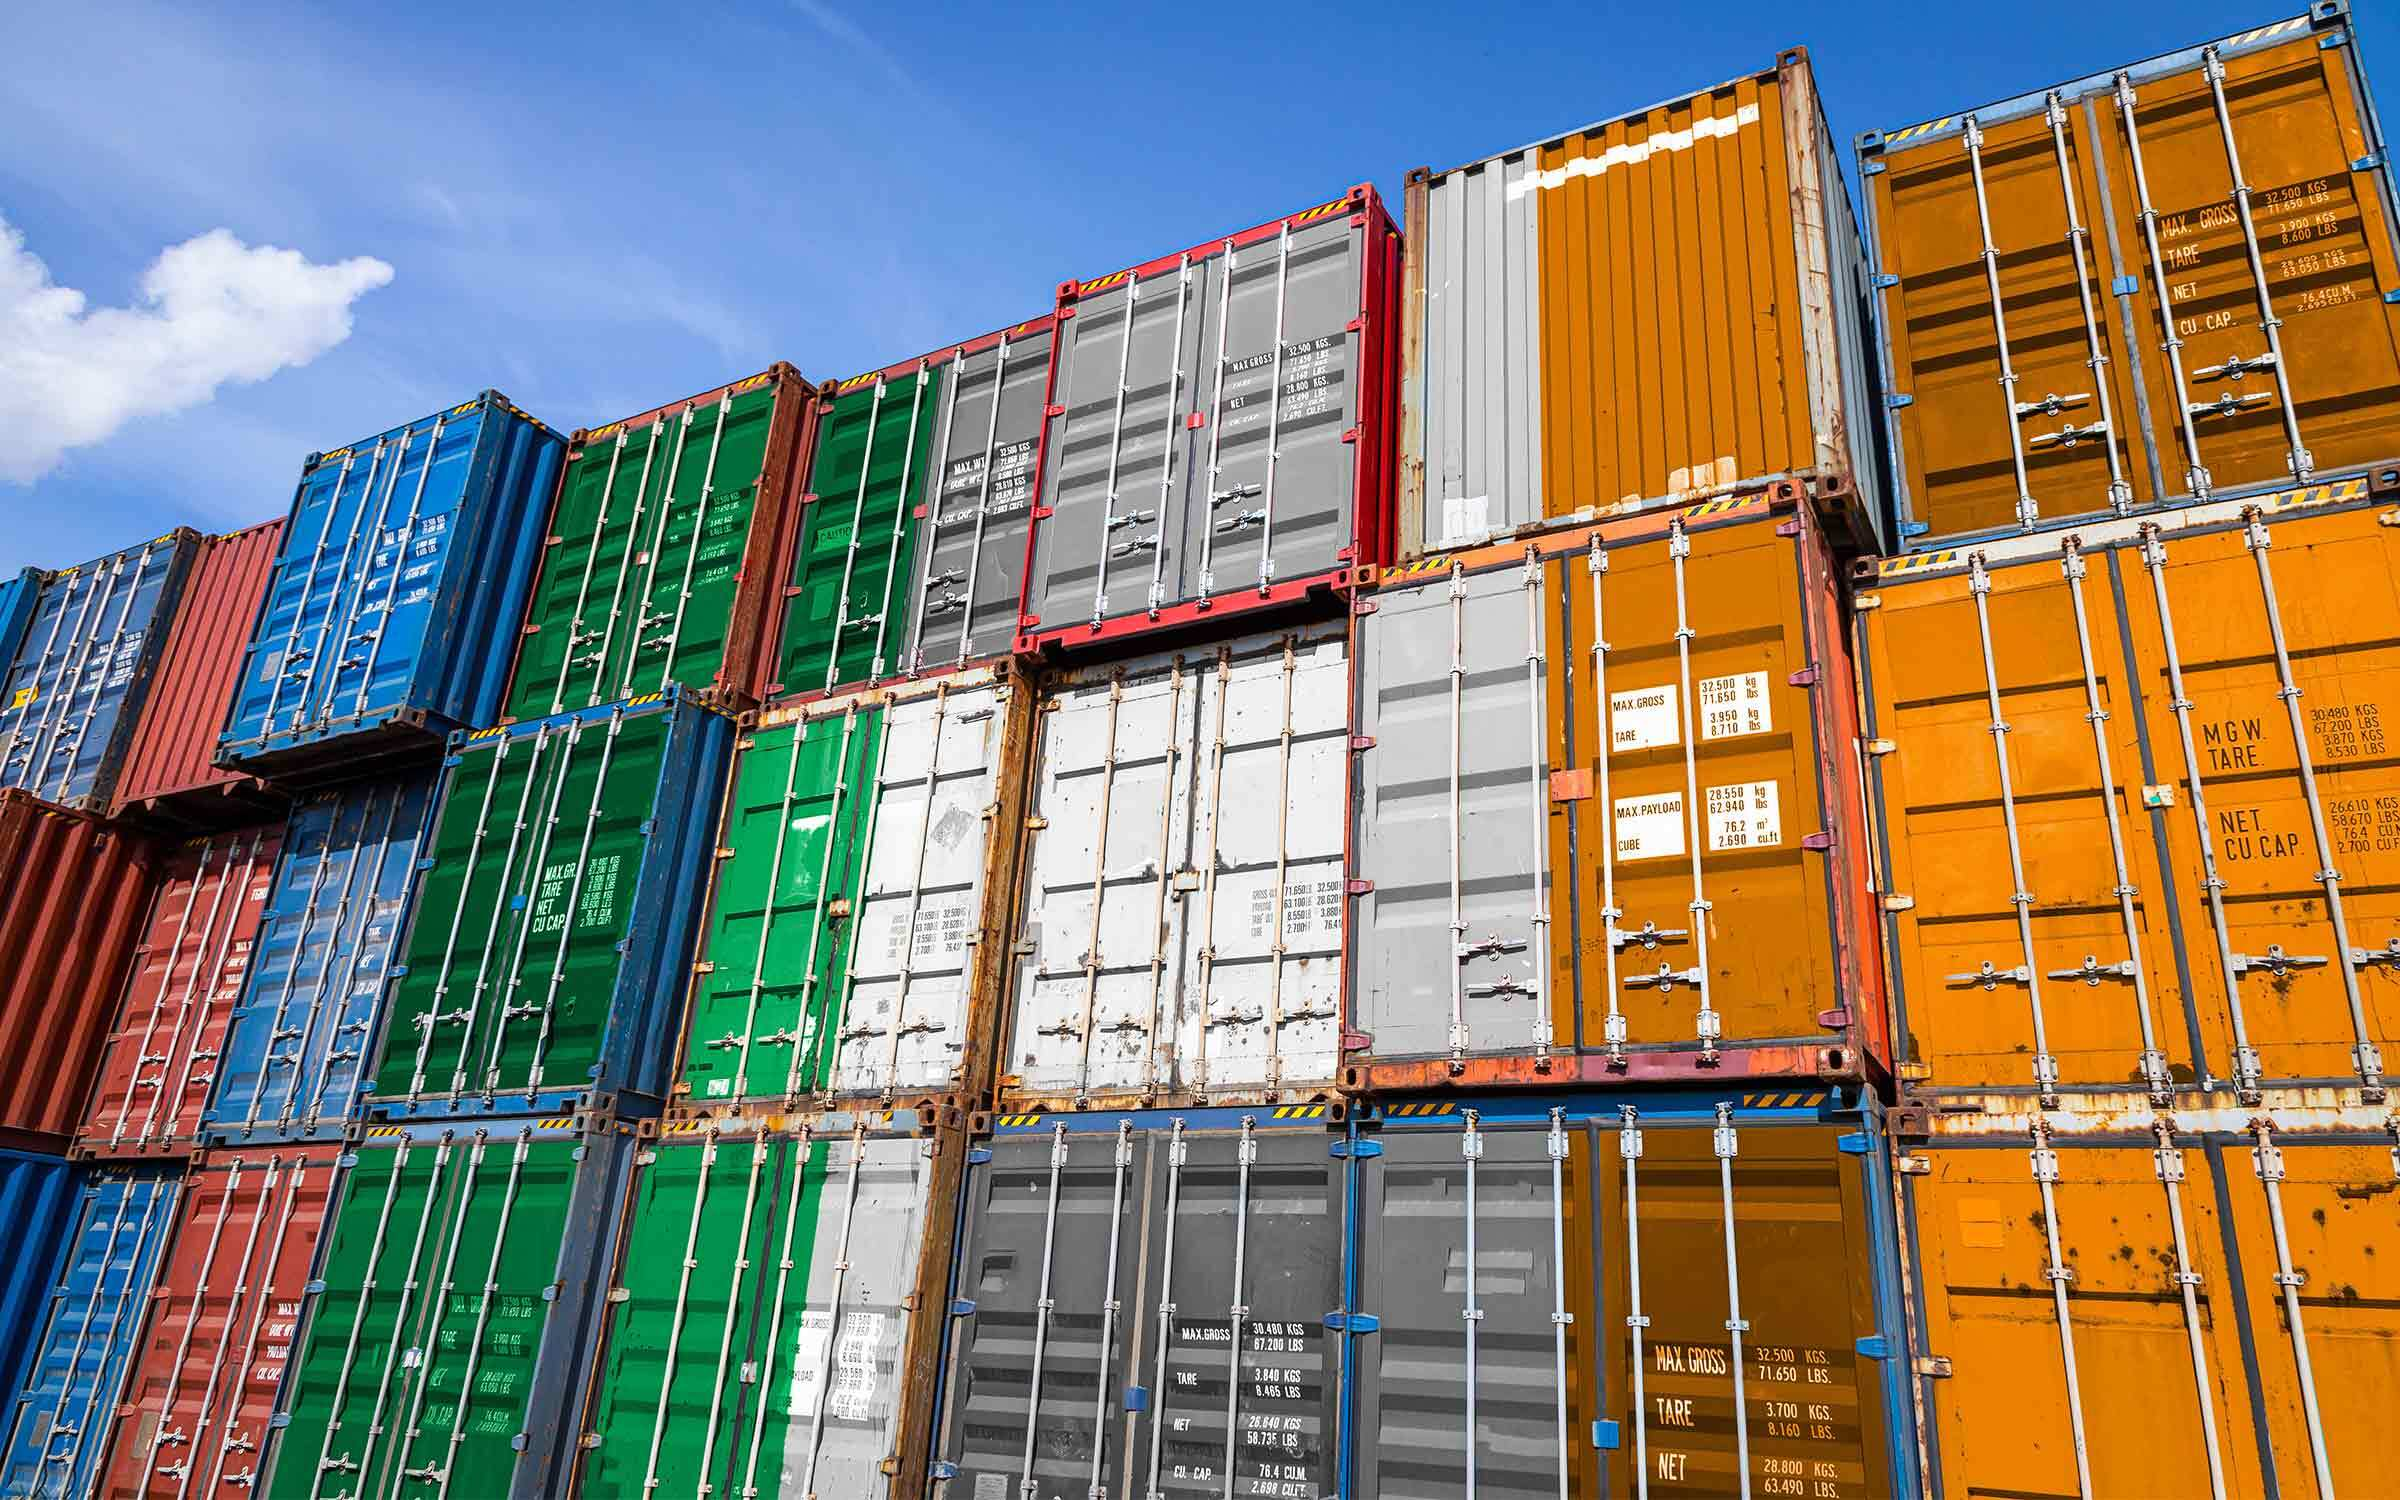 Shipping container costs skyrocket but optimism builds